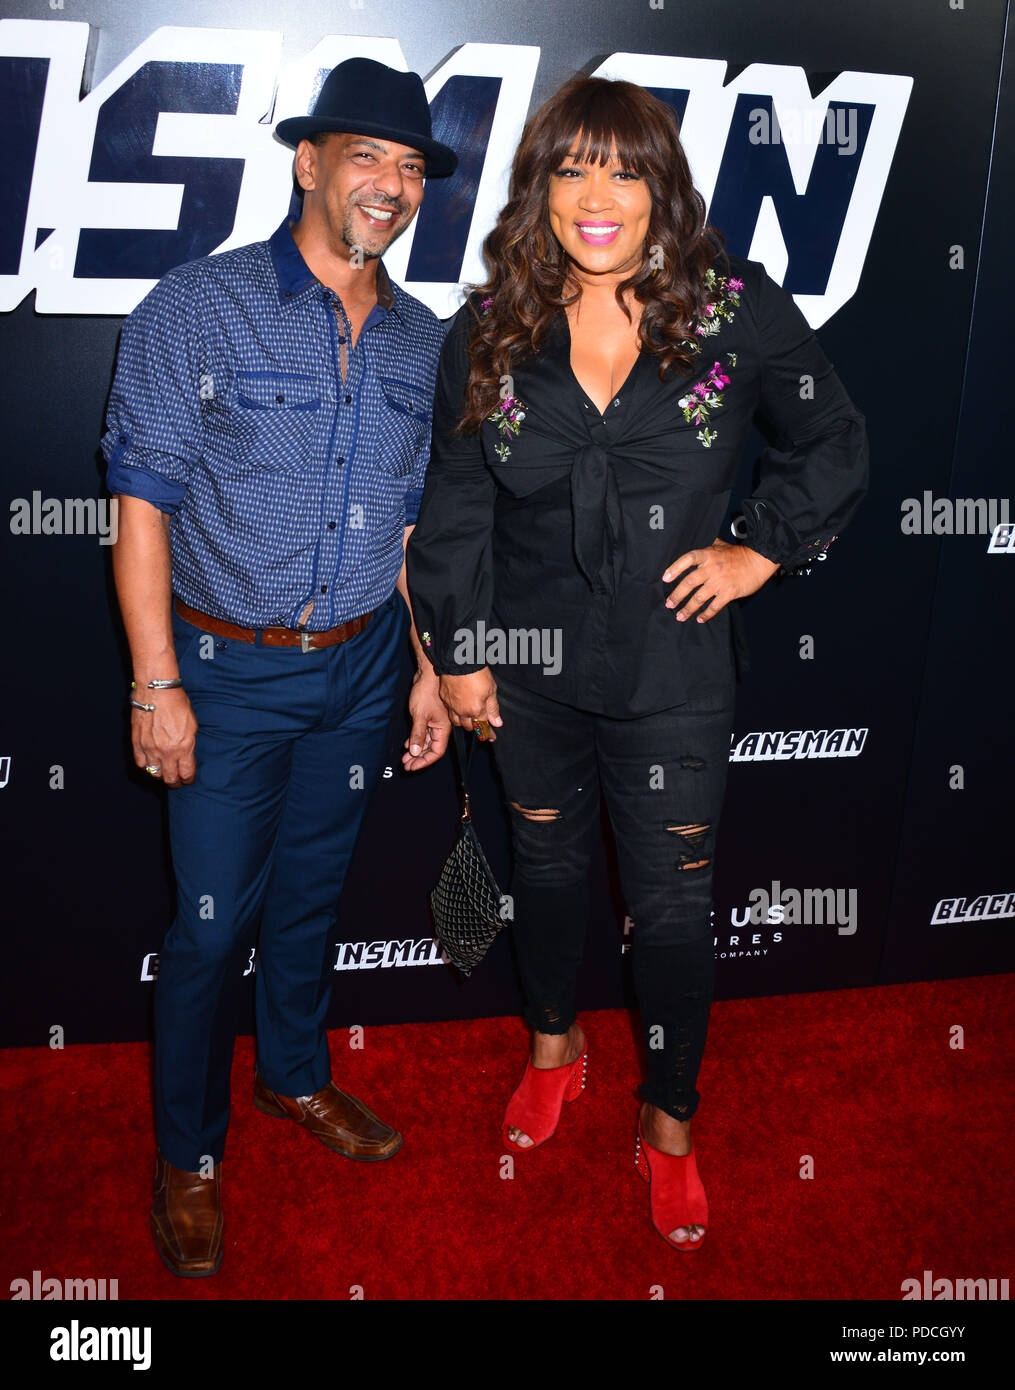 Awesome Kym Whitley Husband wallpapers to download for free greenvirals